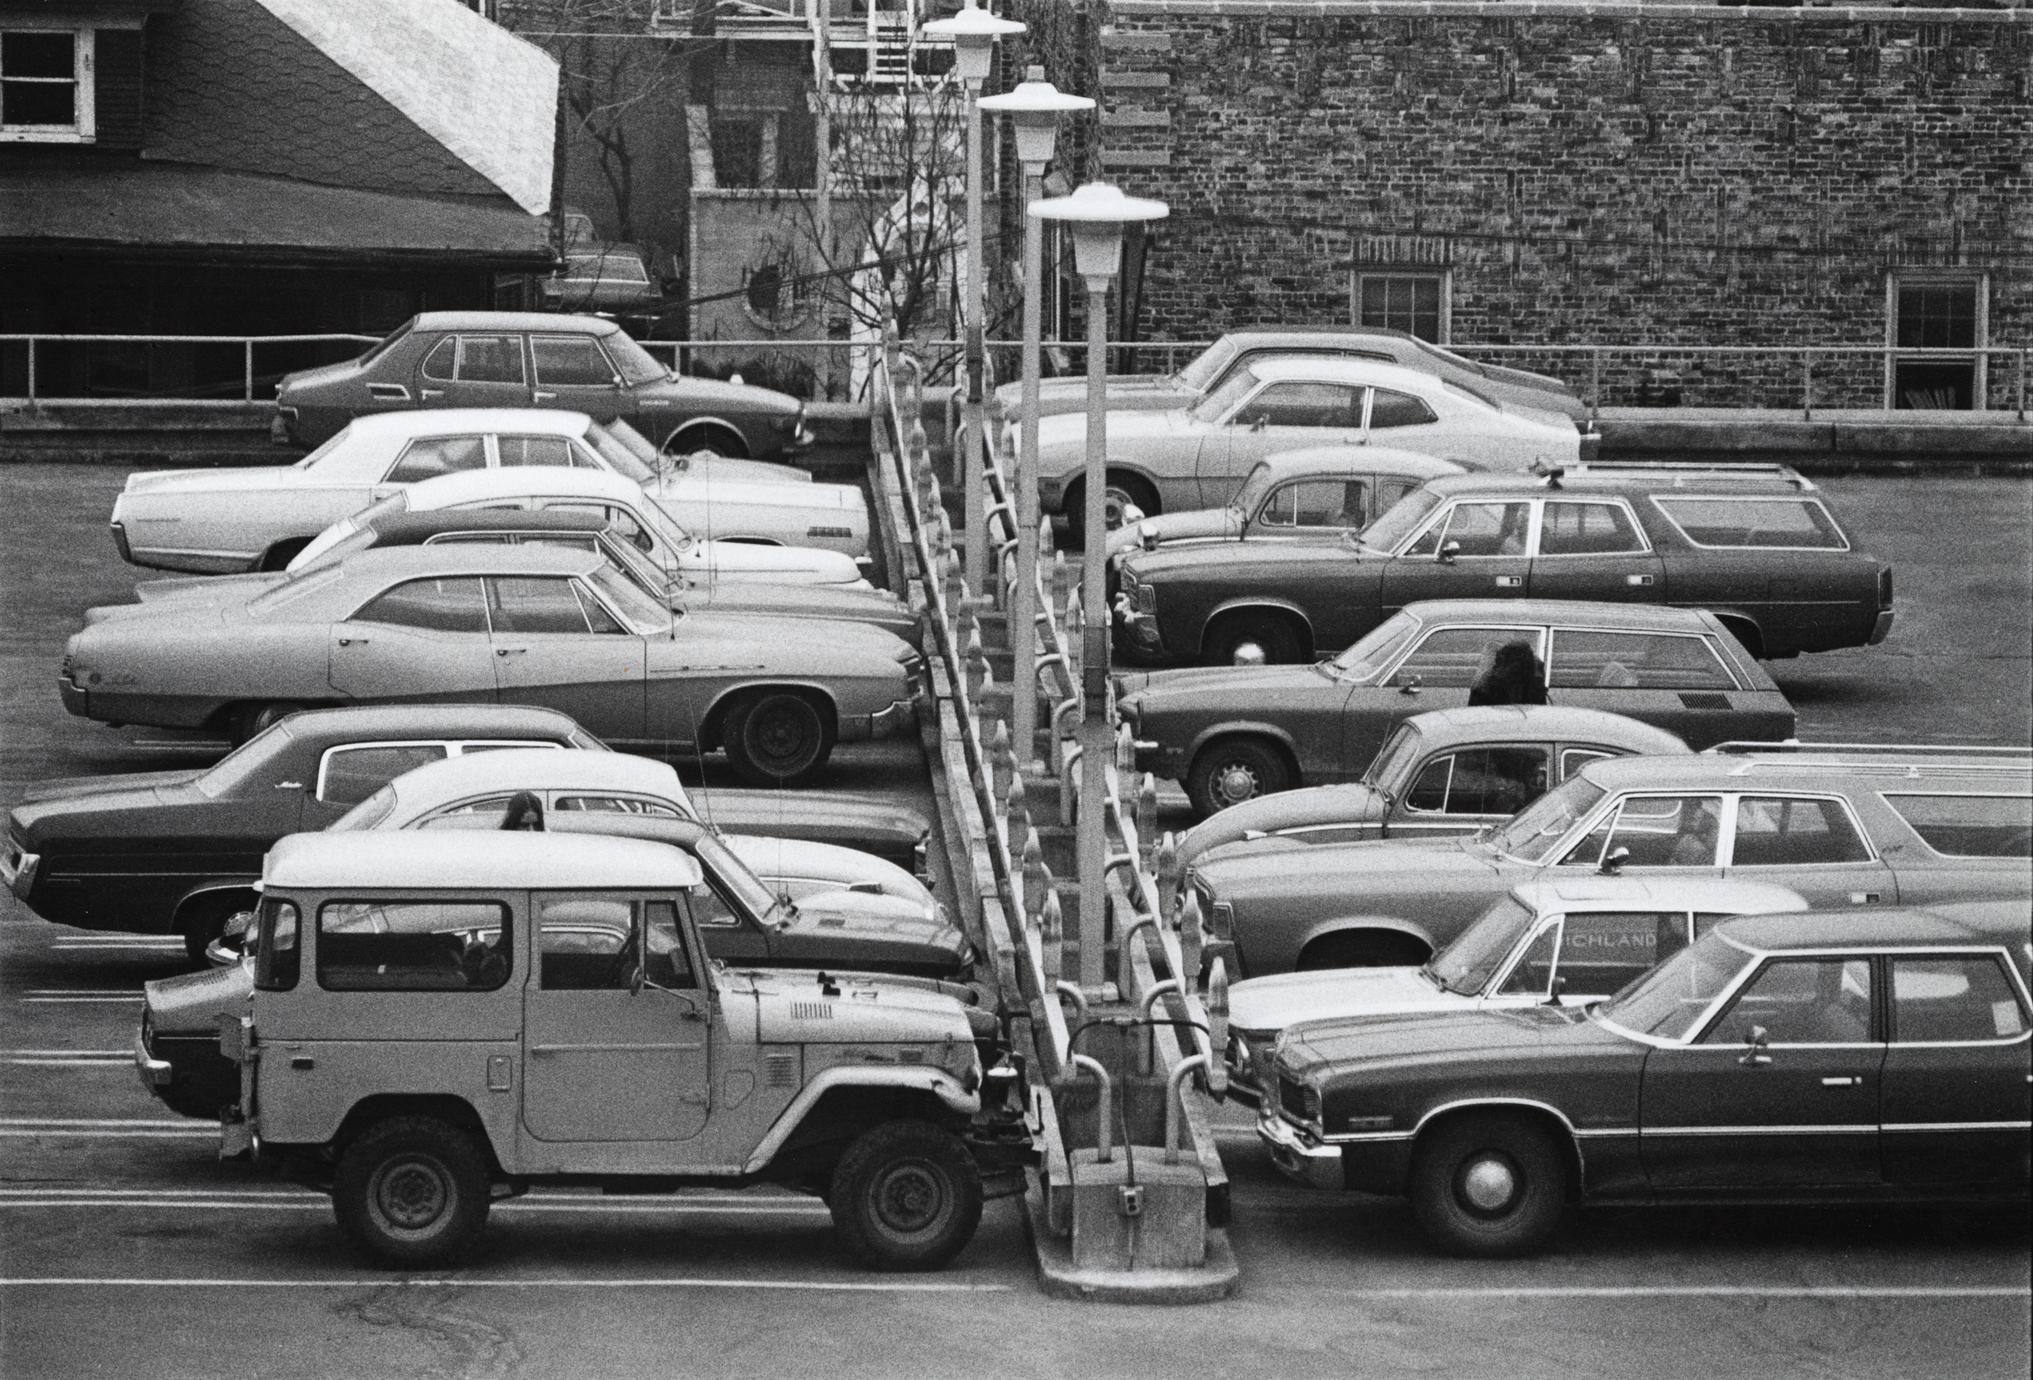 Cars parked on roof